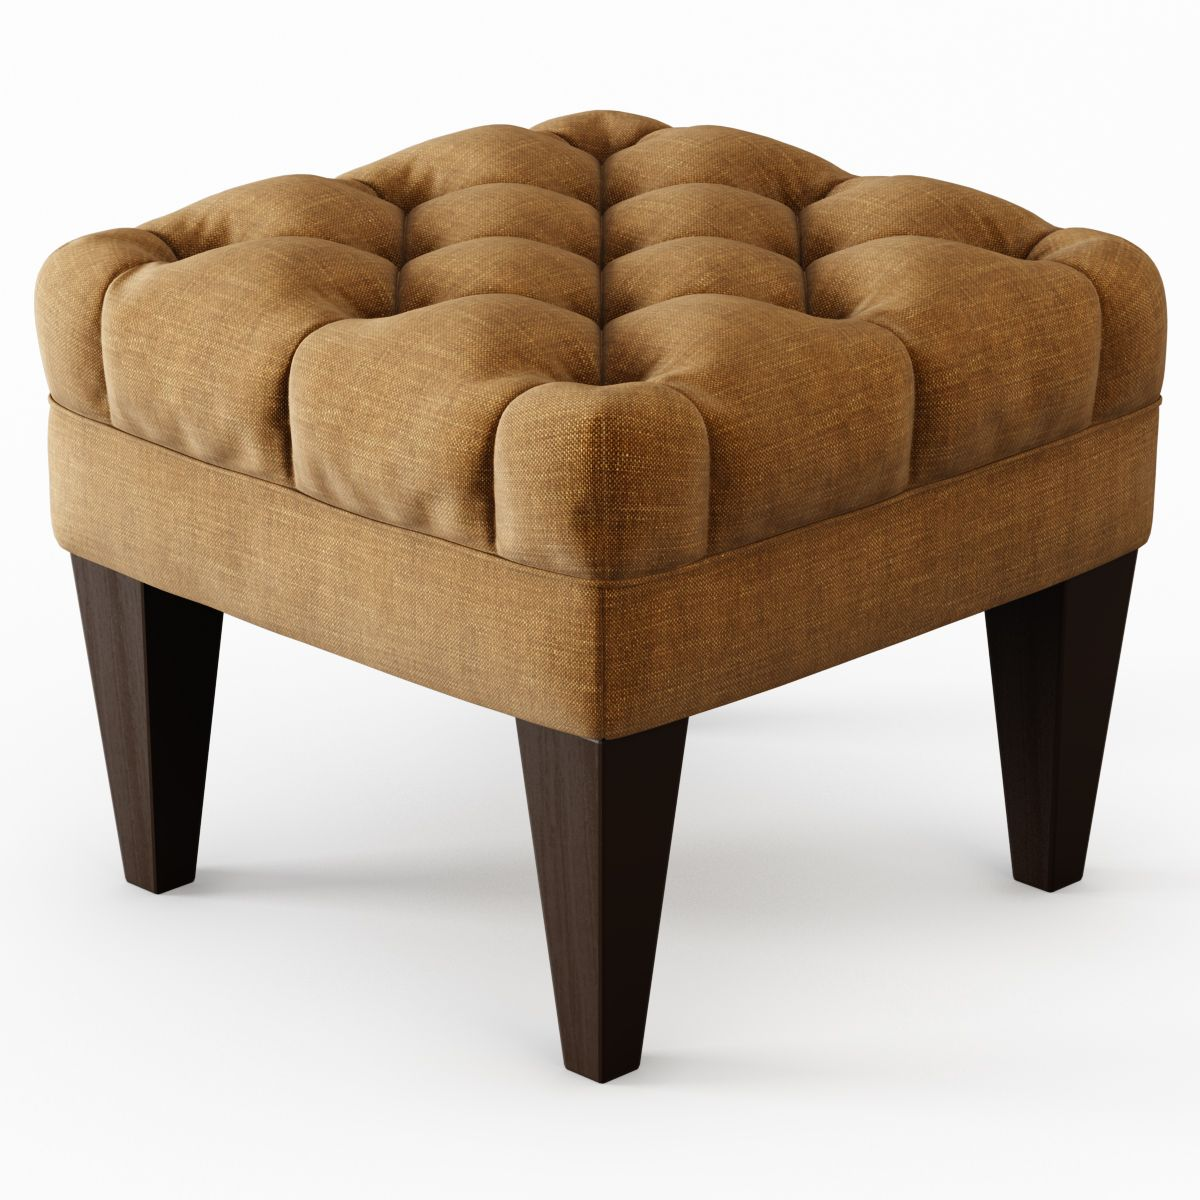 Furniture Clearance Nyc: Pouf Danna #Pouf, #Danna In 2019